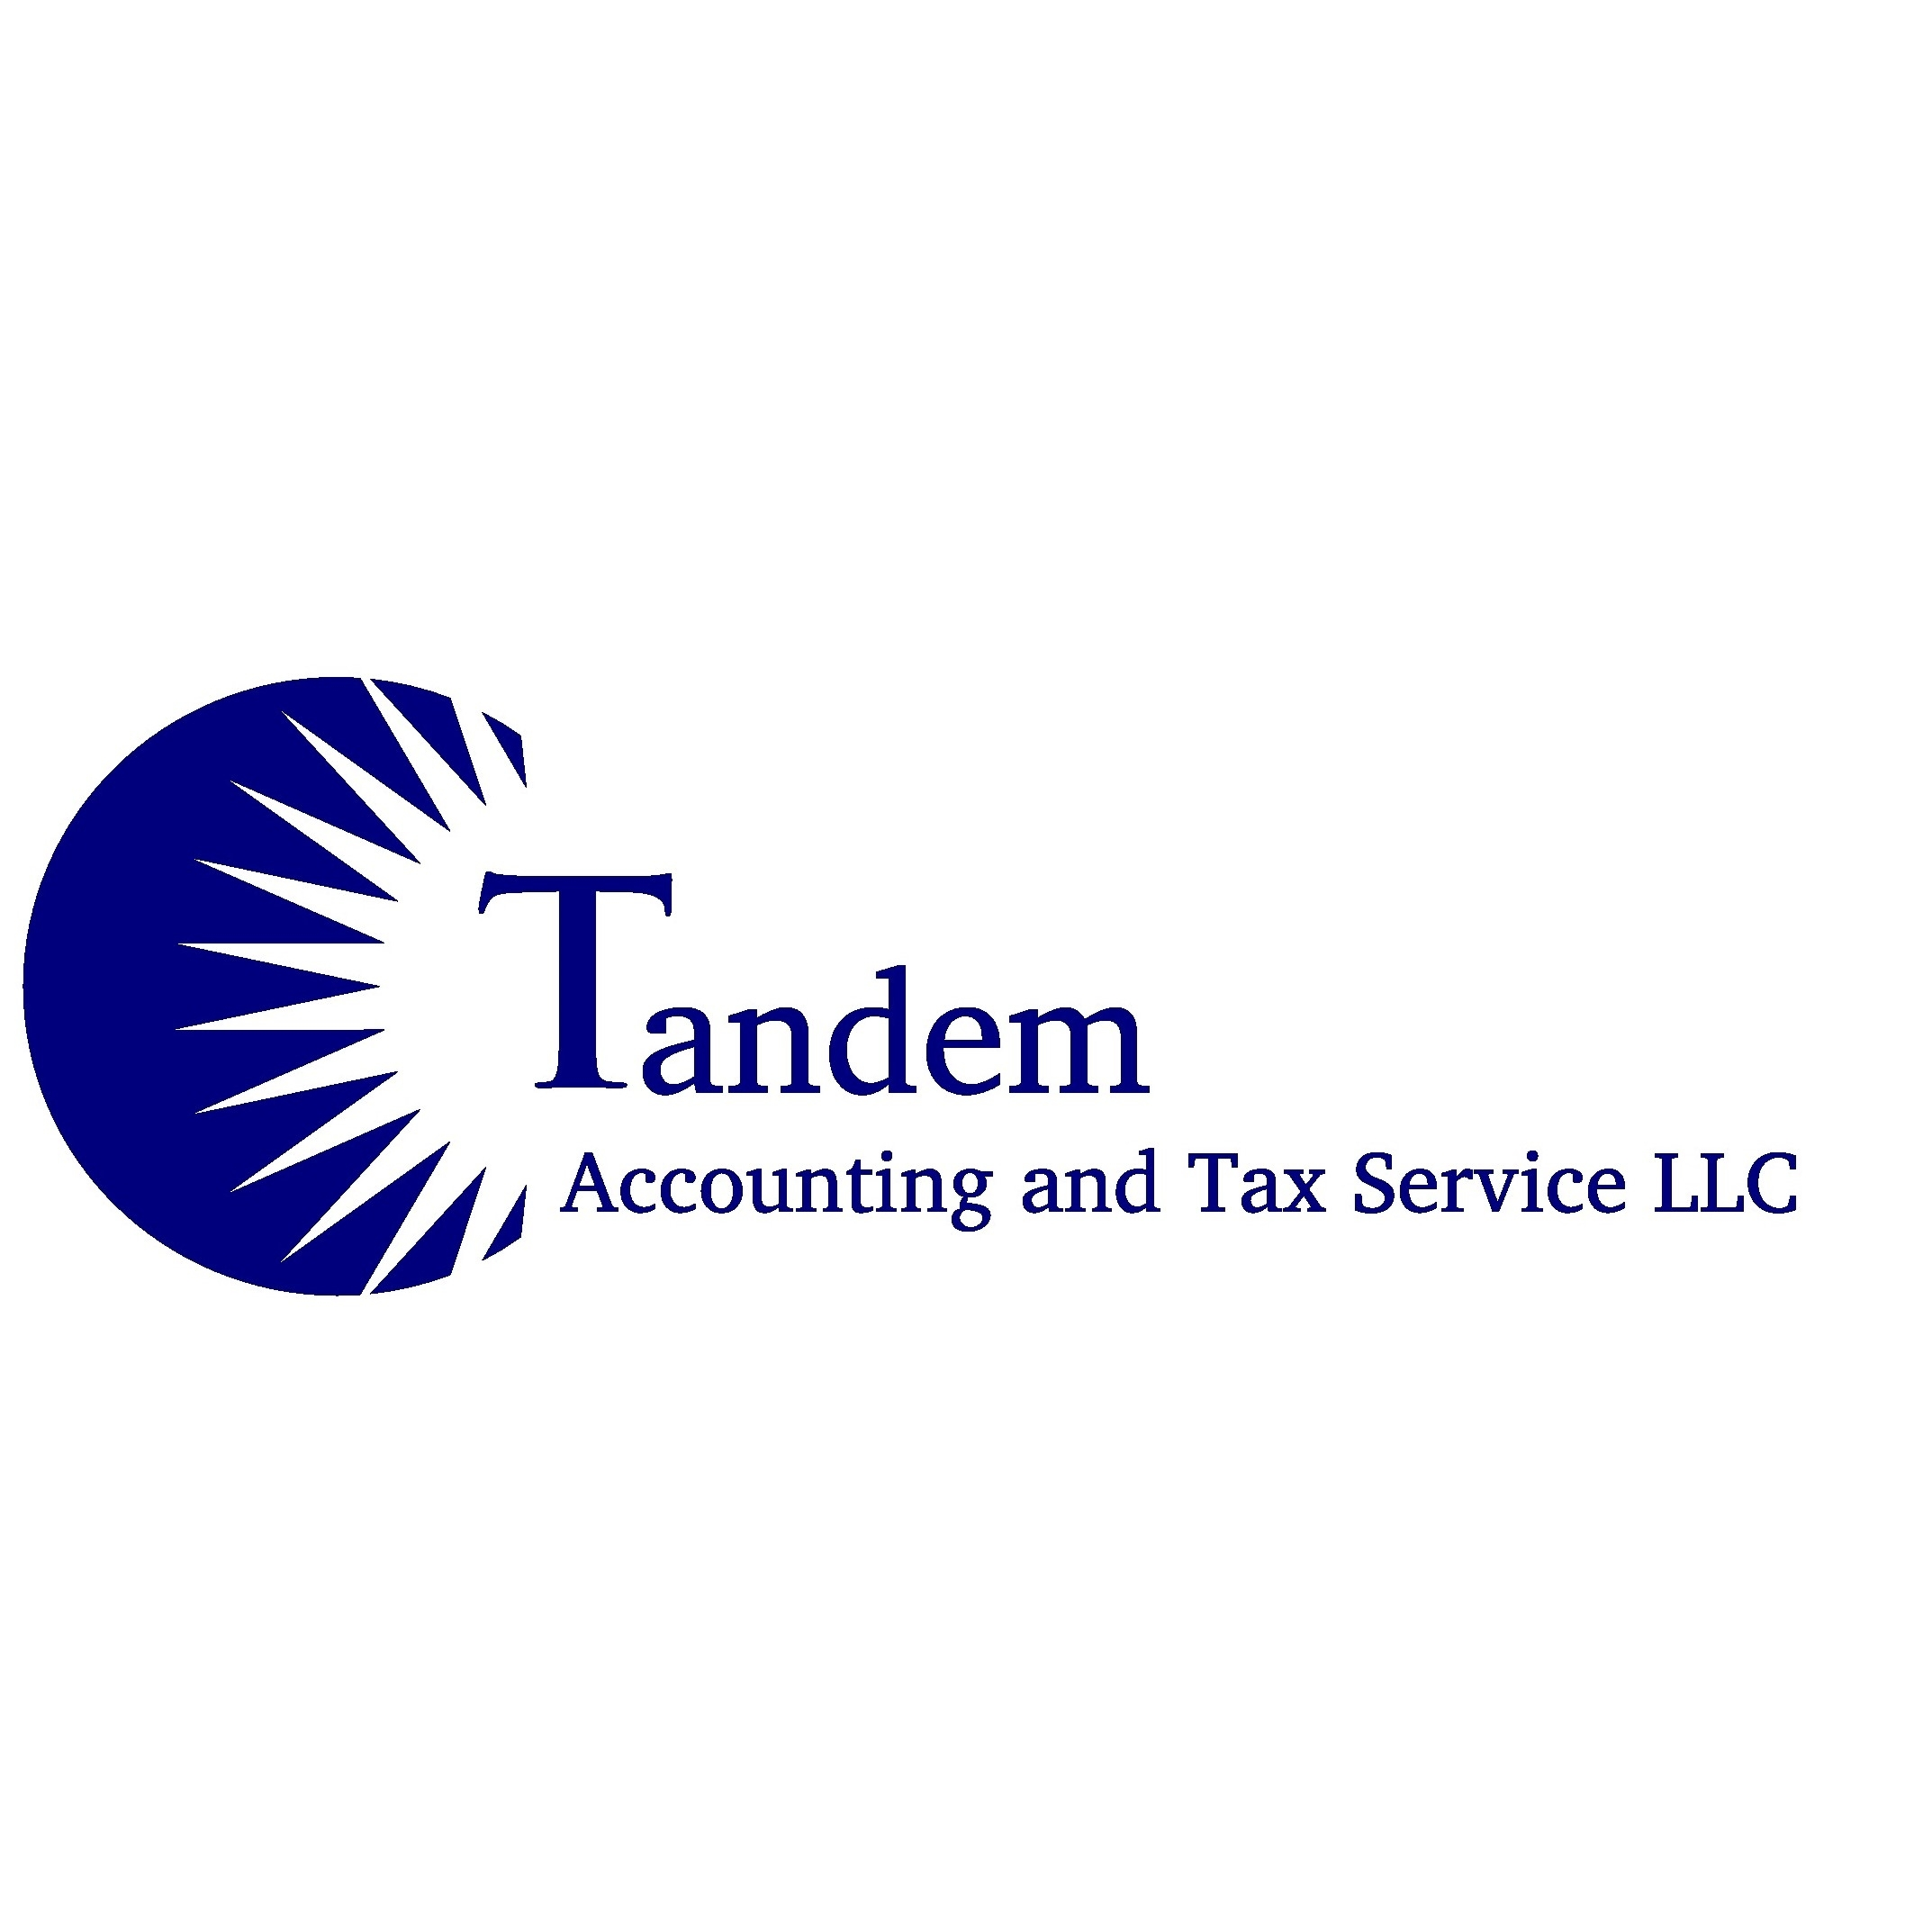 image of Tandem Accounting and Tax Service LLC